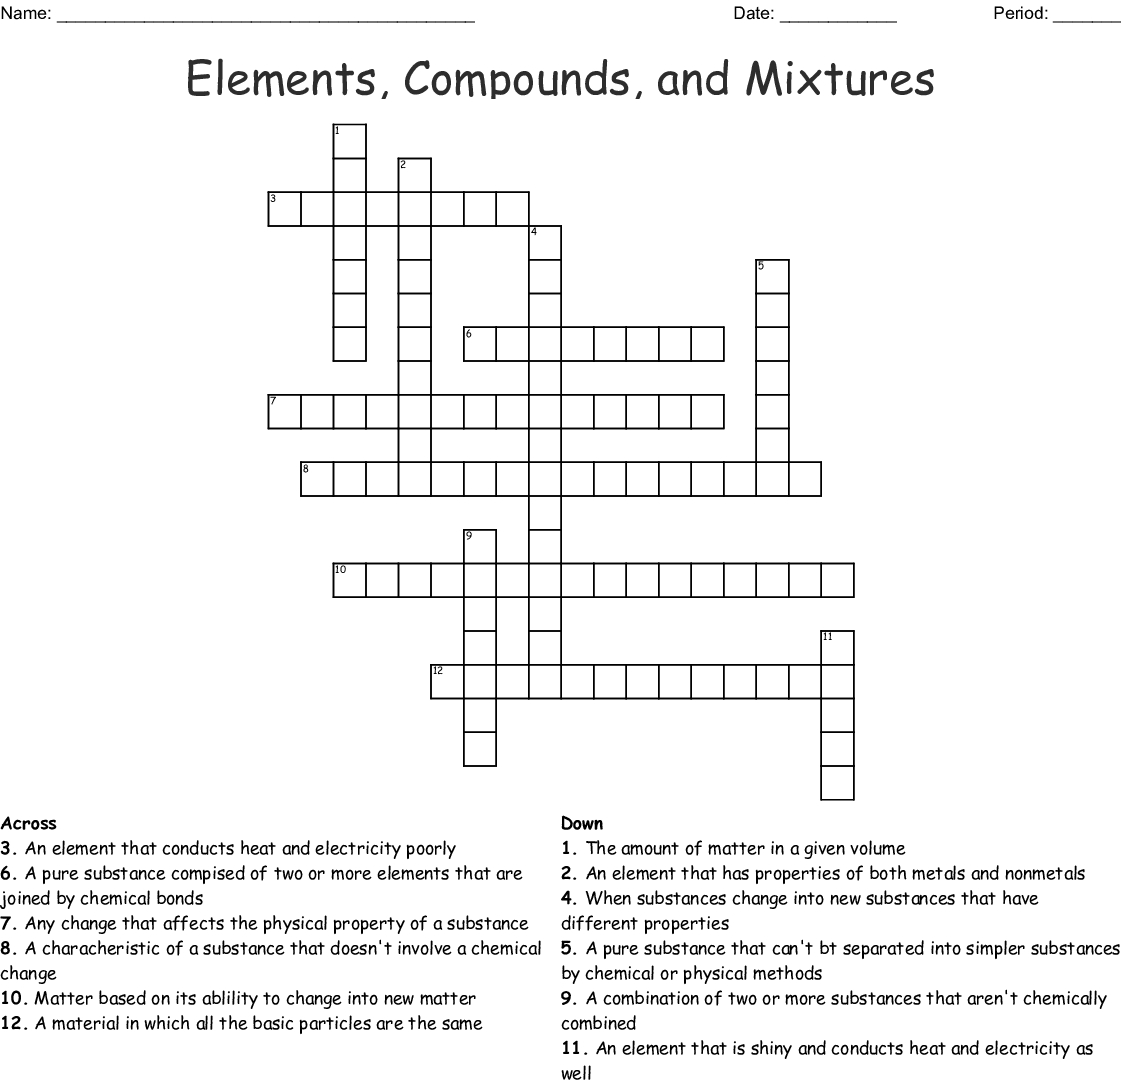 Elements Compounds And Mixtures Crossword Word